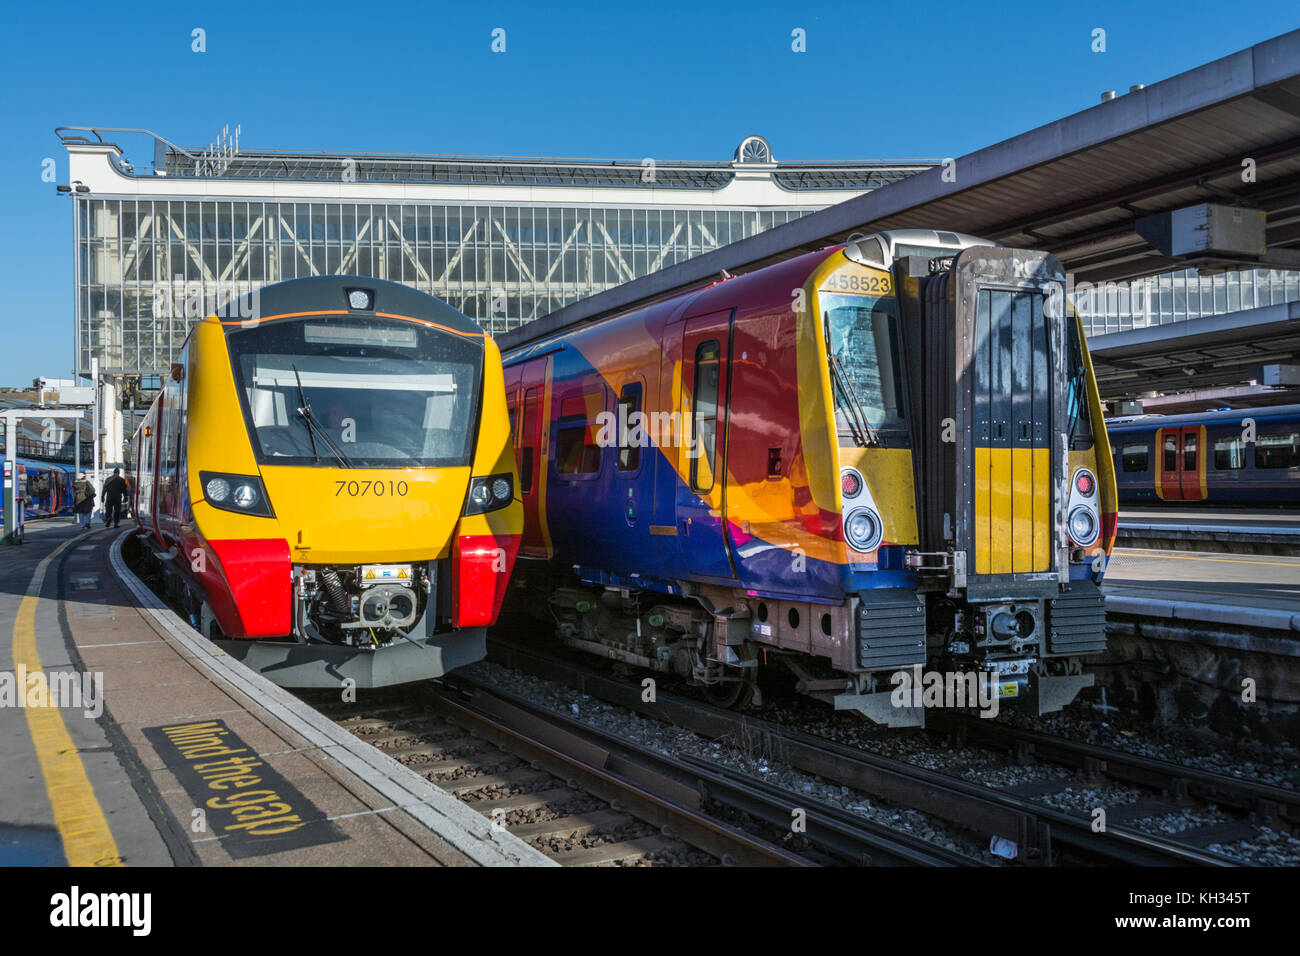 One of the new South Western Railway Class 707s trains at Waterloo station, London, UK. Stock Photo